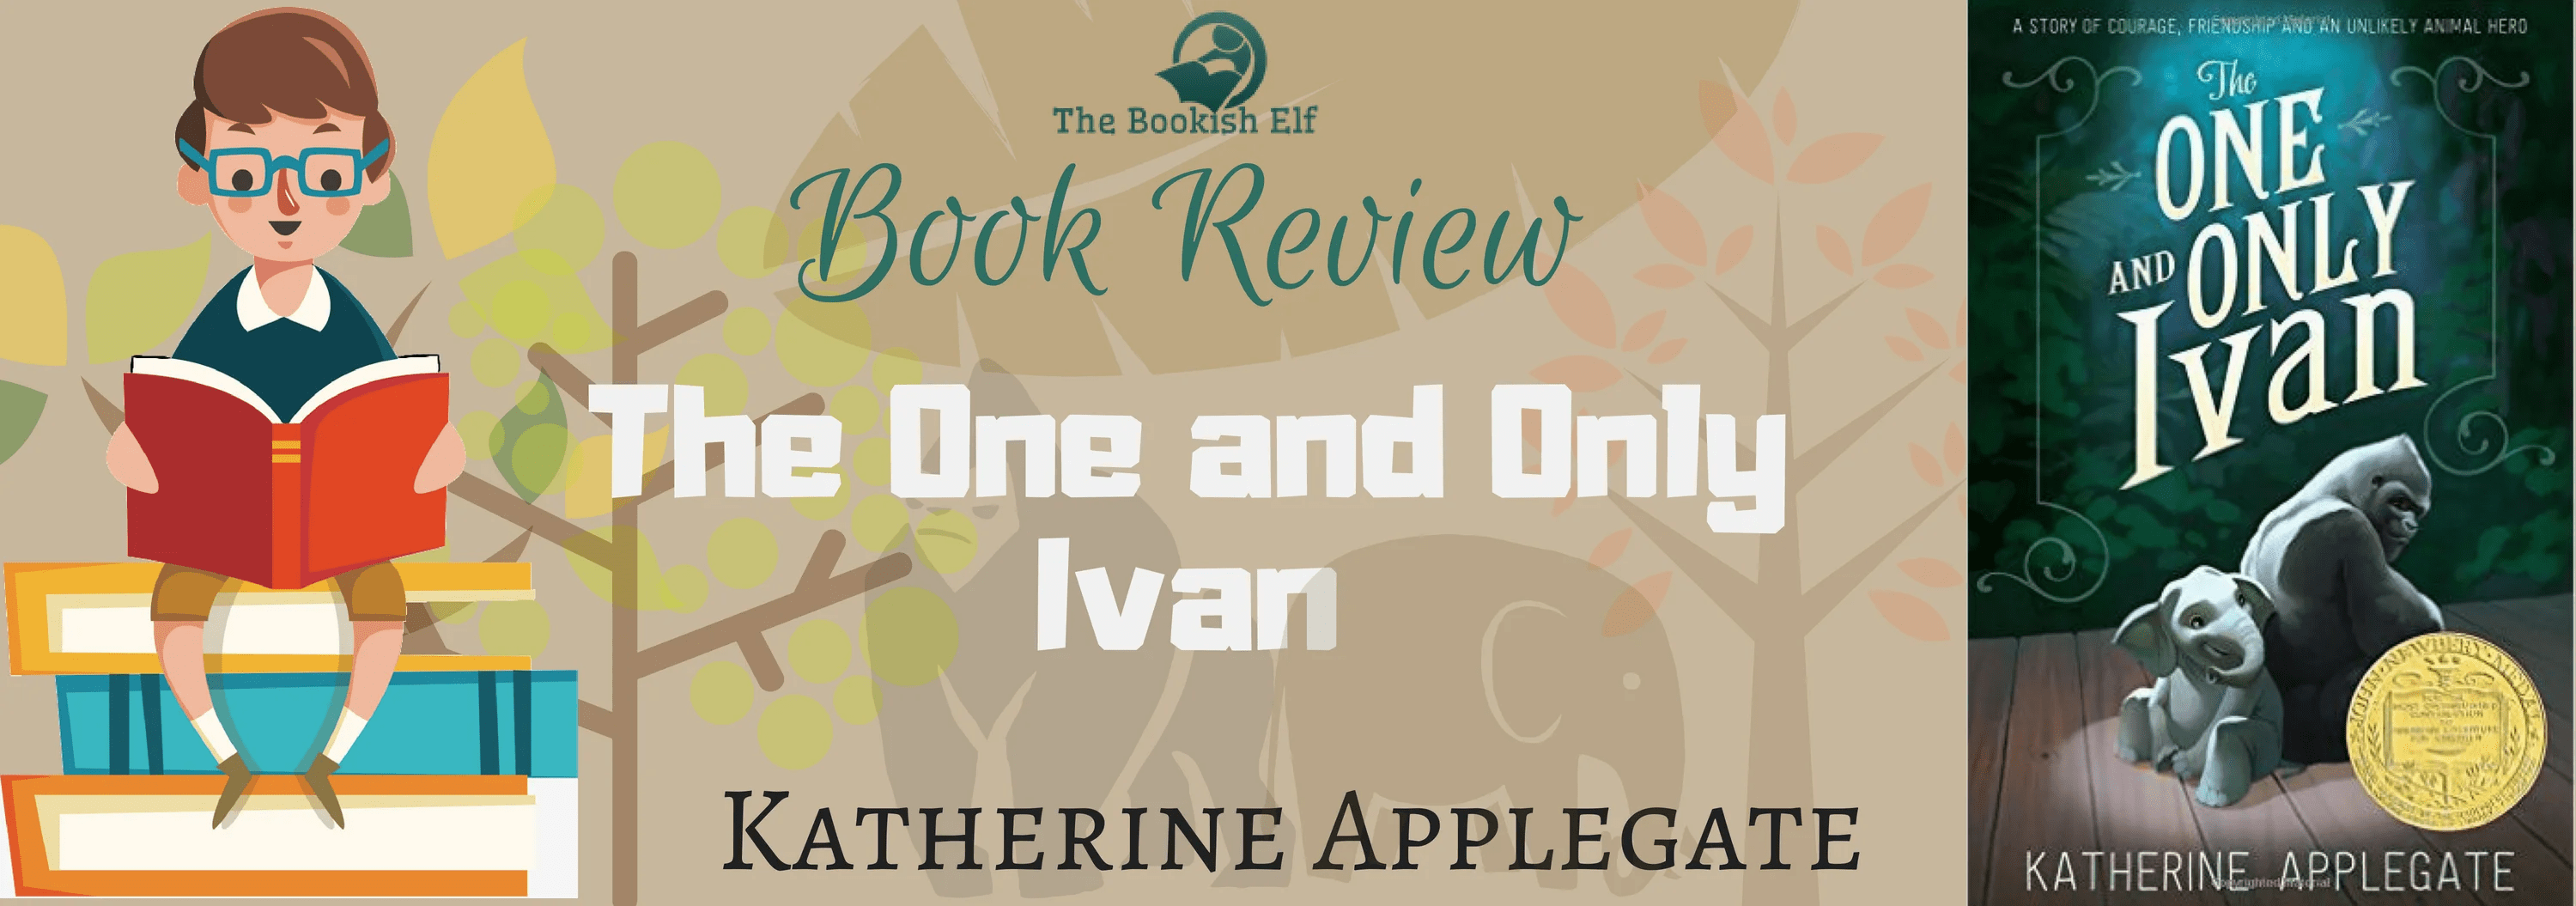 Book Review: The One and Only Ivan by Katherine Applegate